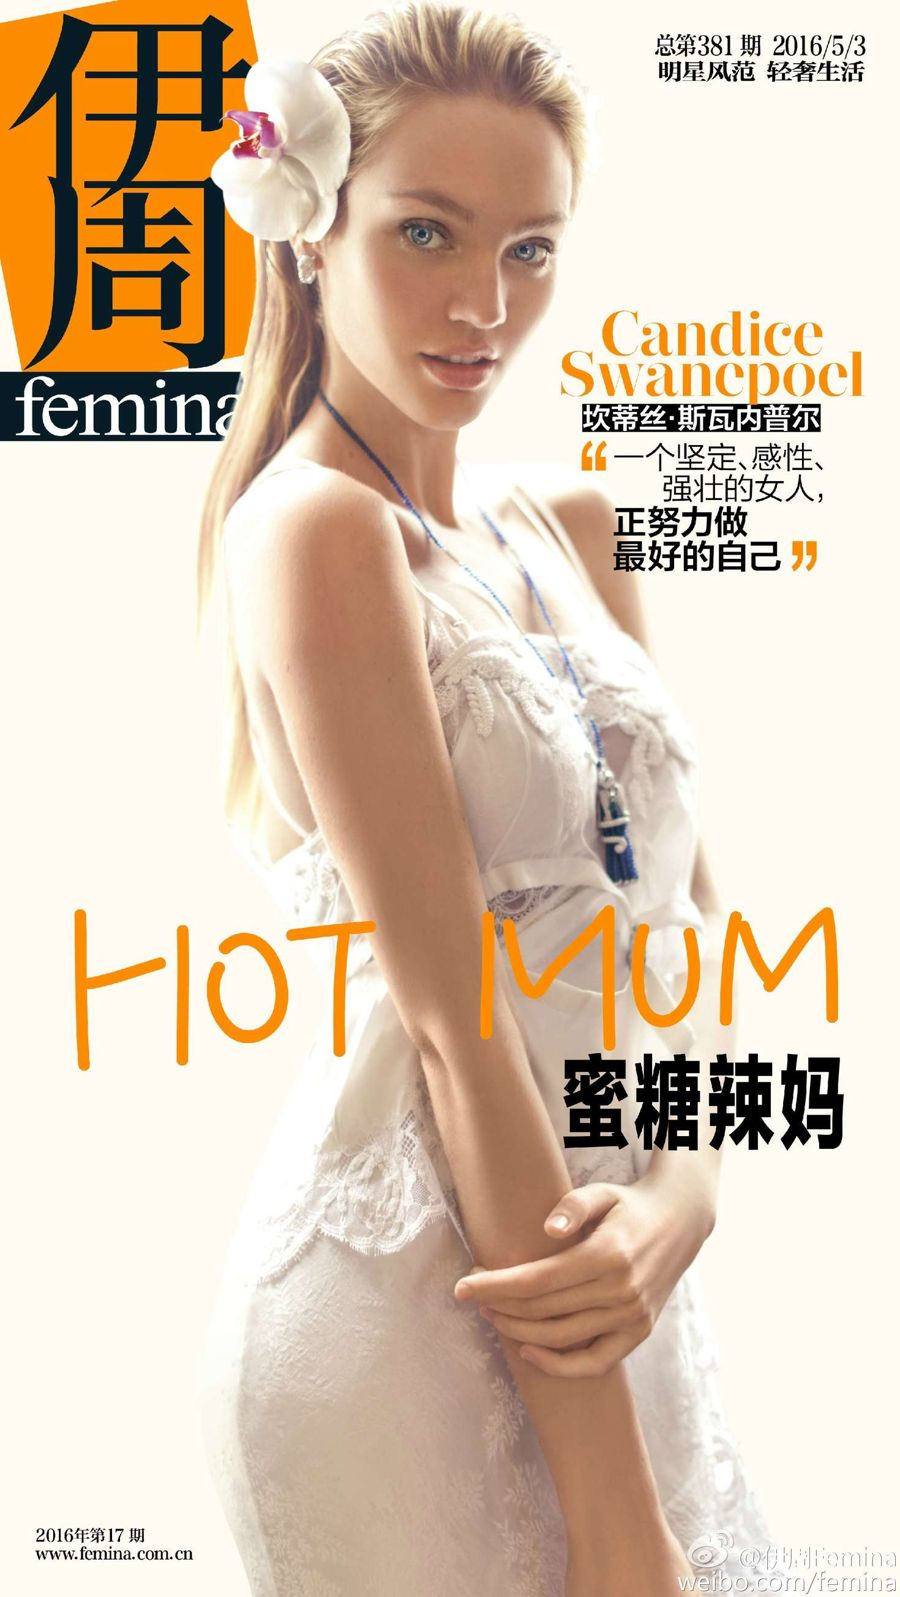 Candice Swanepoel - Femina China Magazine (May 2016)